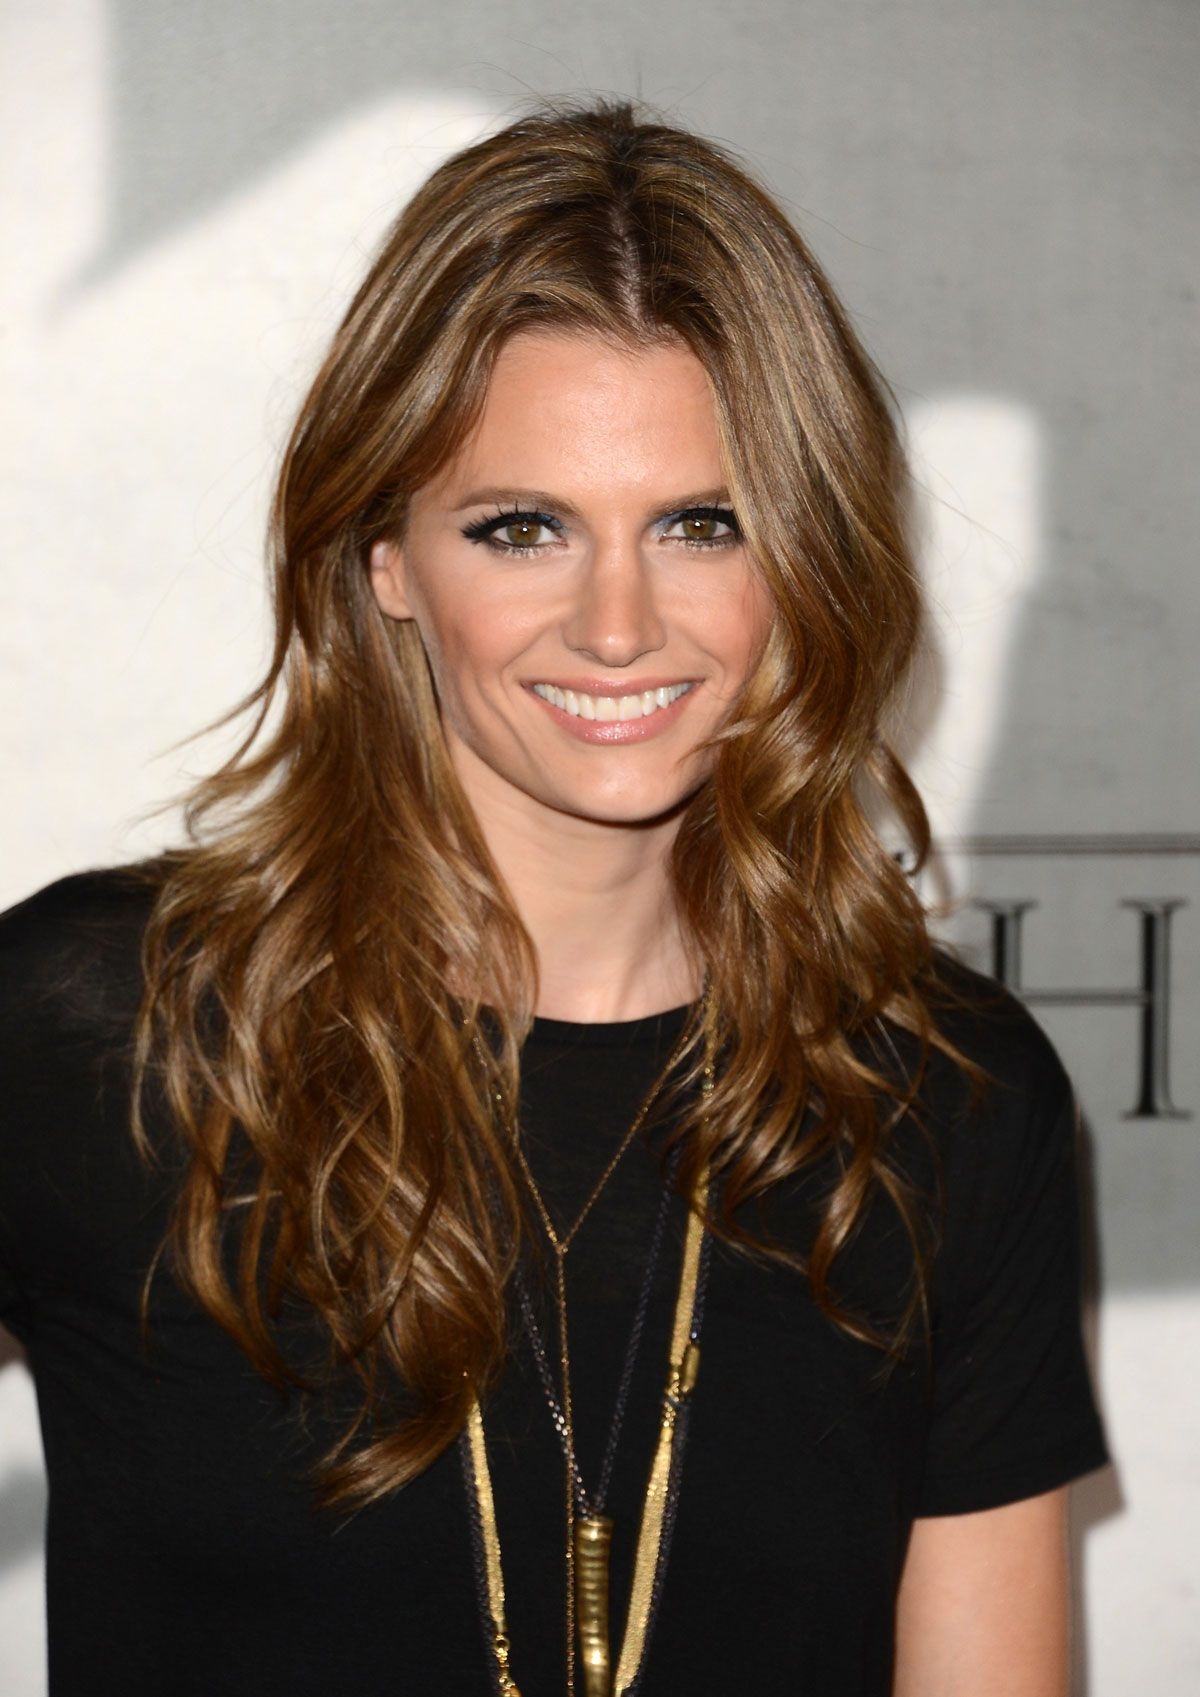 stana katic - she does hollywood right! she's the lead on a very